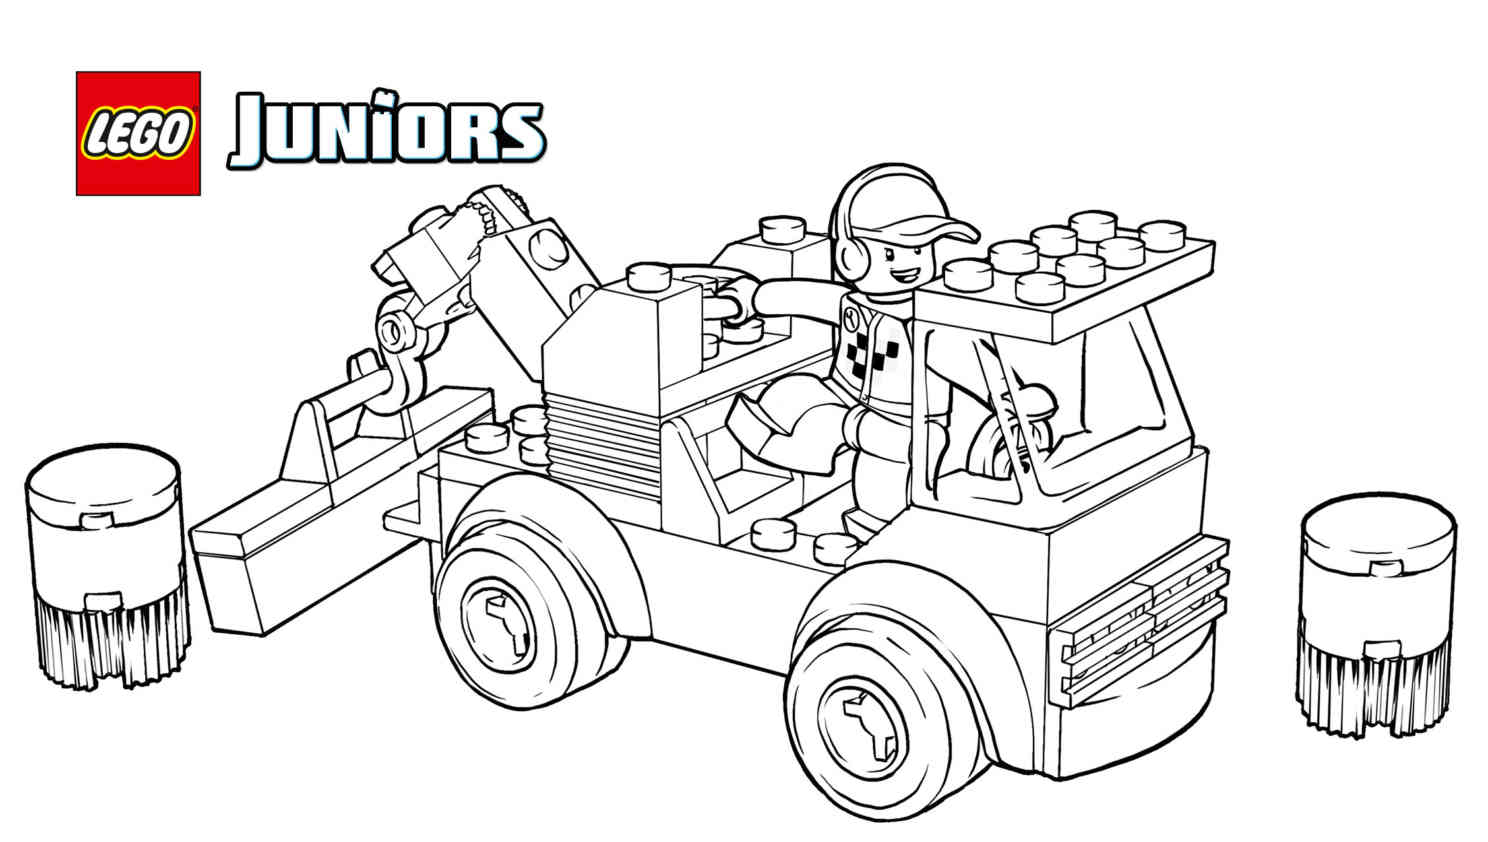 Lego Juniors Racetrack tow Truck Coloring Page Coloring Pages Collection Of Lego Dimensions Coloring Pages Collection Page Ninja Grig3 Printable